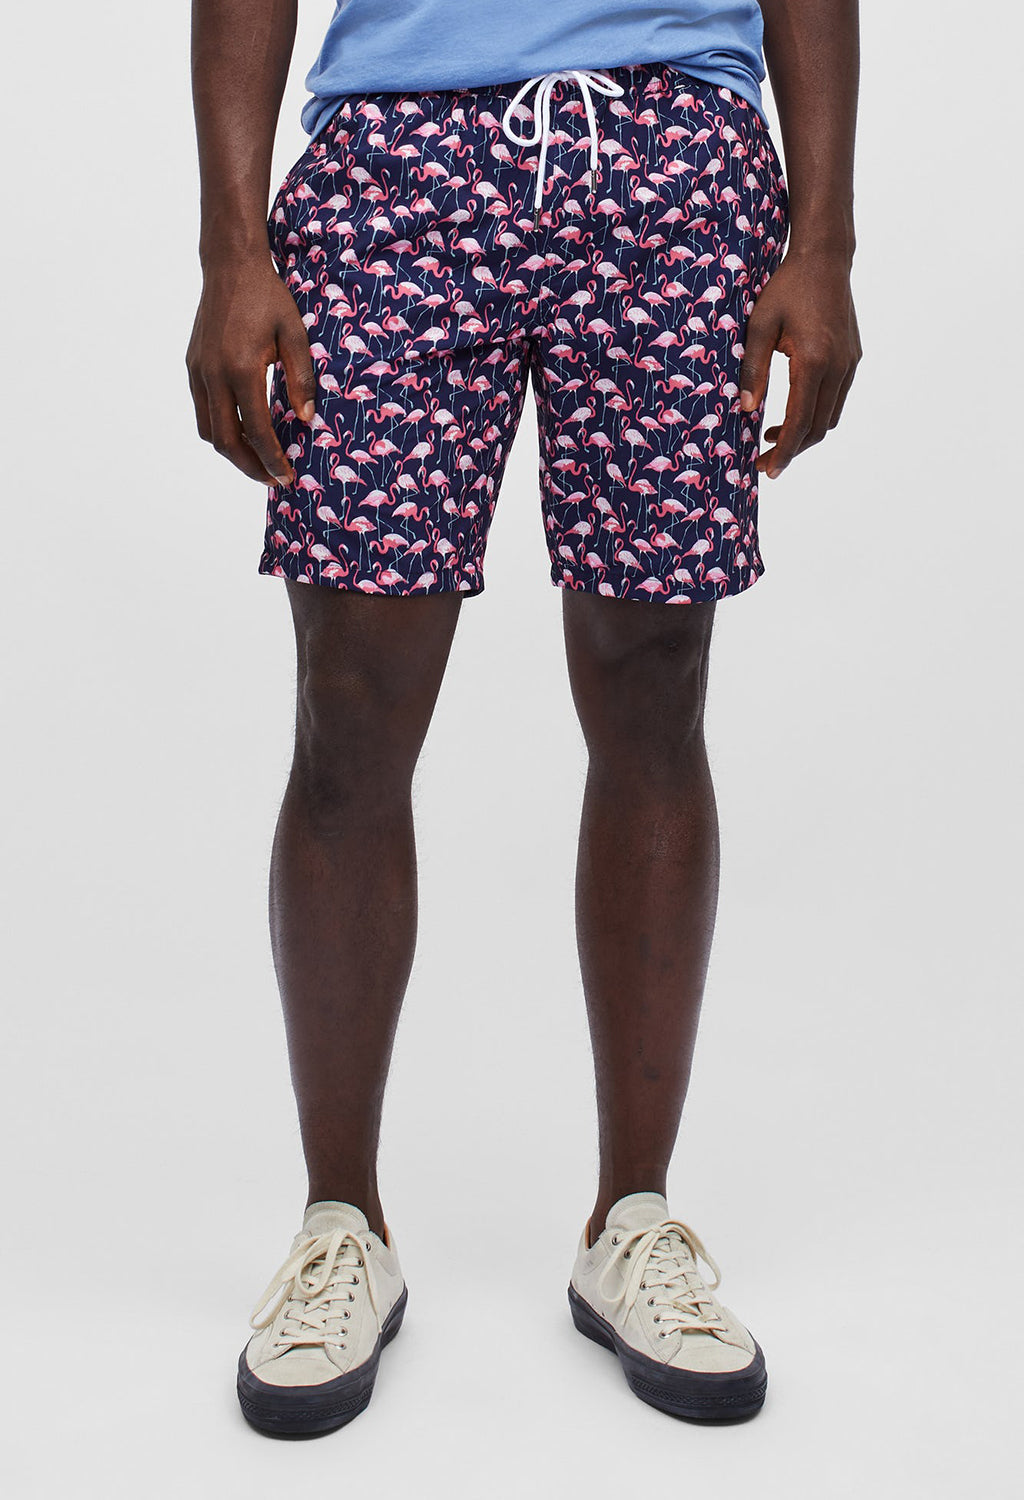 Bonobos Riviera Swim Trunks , Flamingo